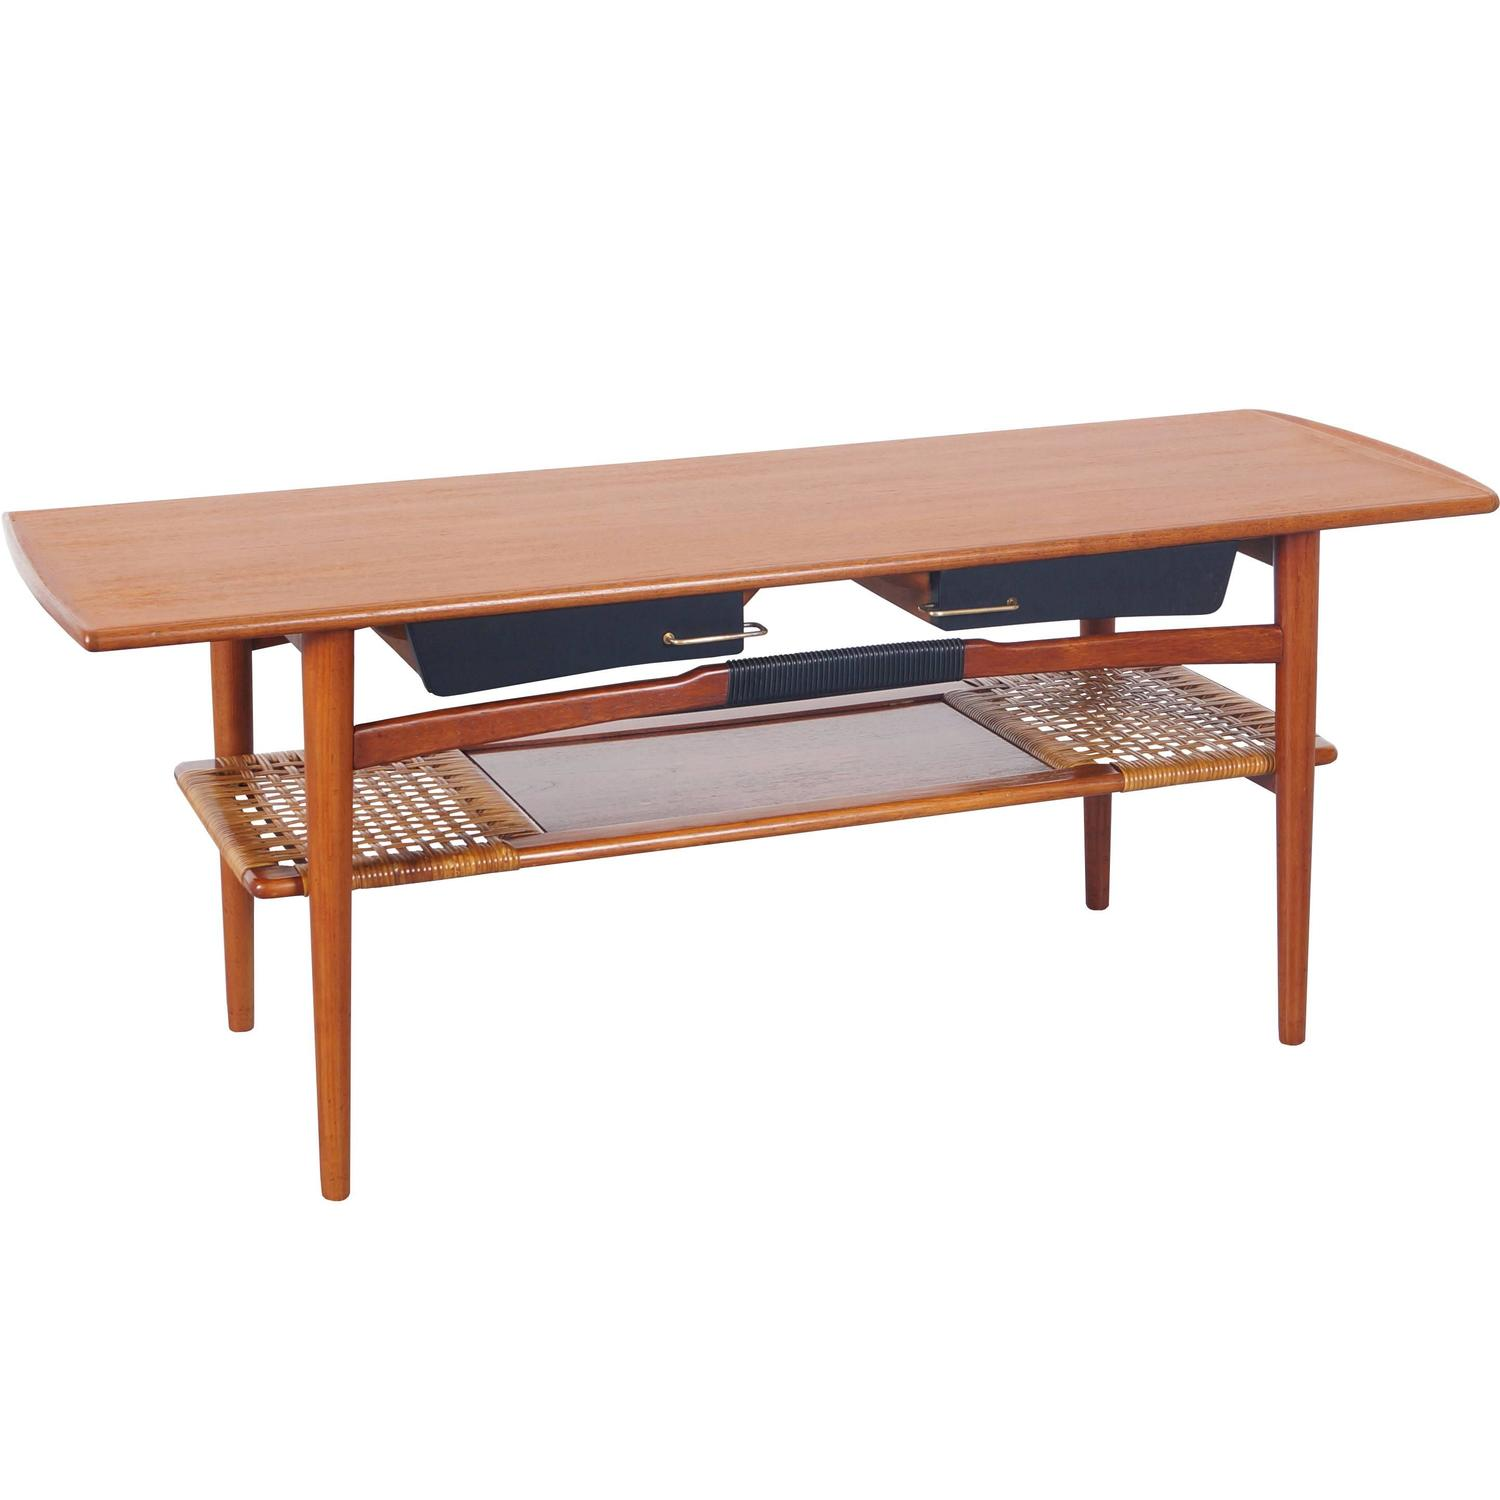 Scandinavian Teak Coffee Table: Danish Modern Teak Coffee Table For Sale At 1stdibs